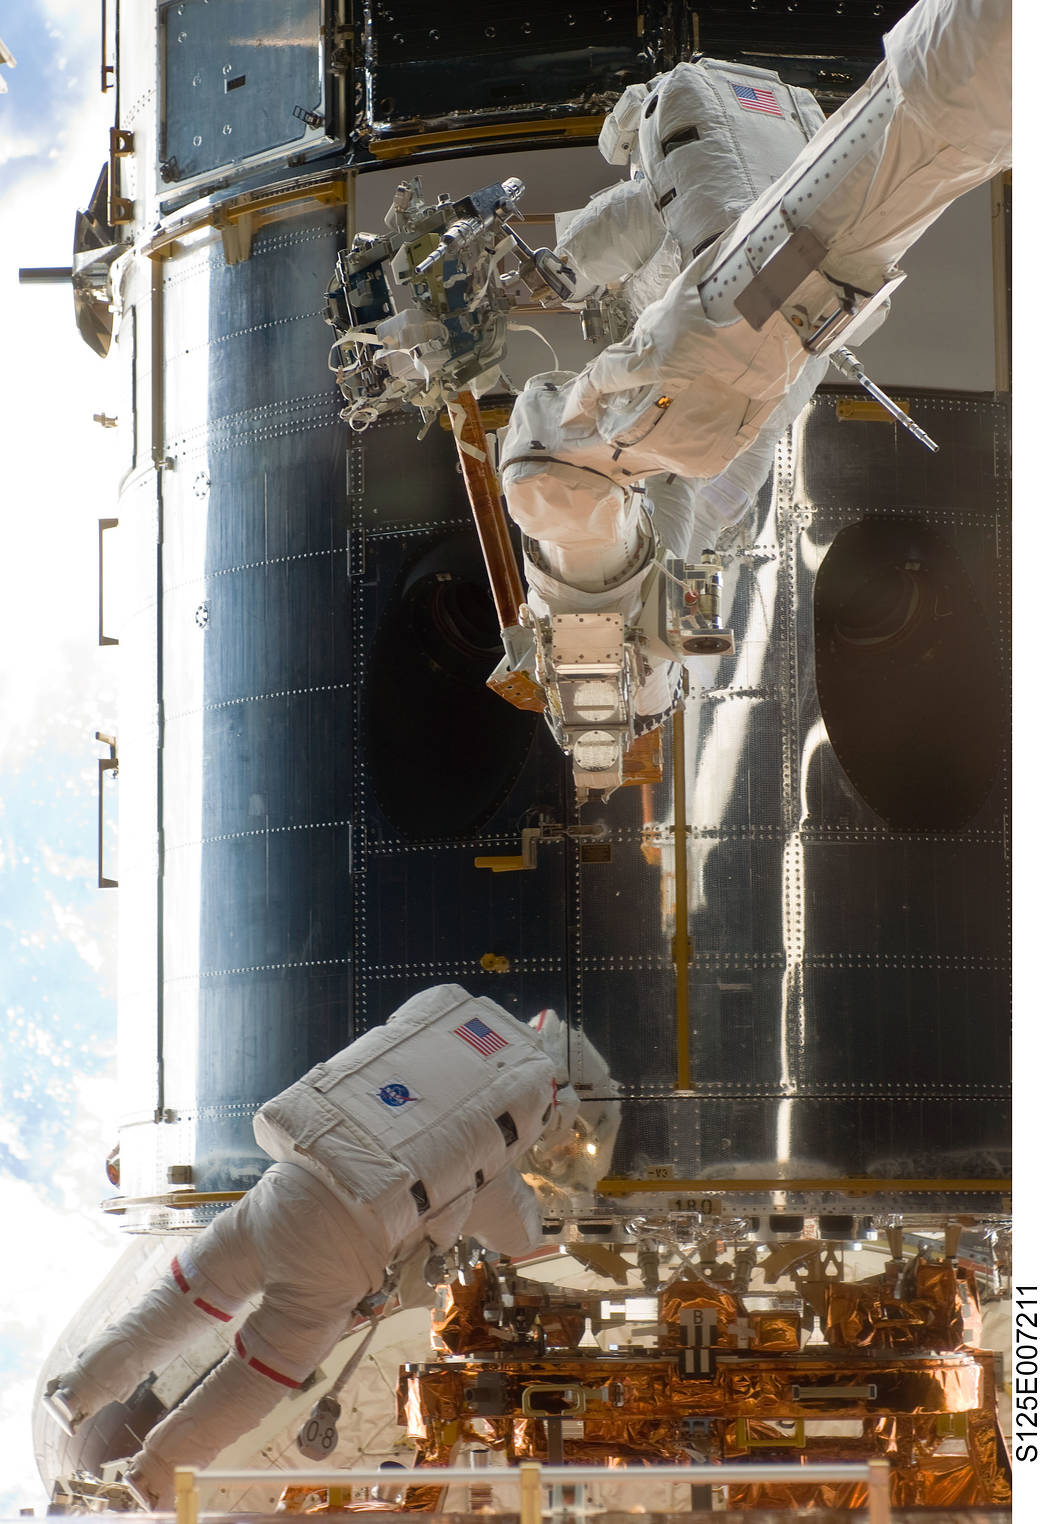 STS 125 Grunsfeld and Feustel spacewalk